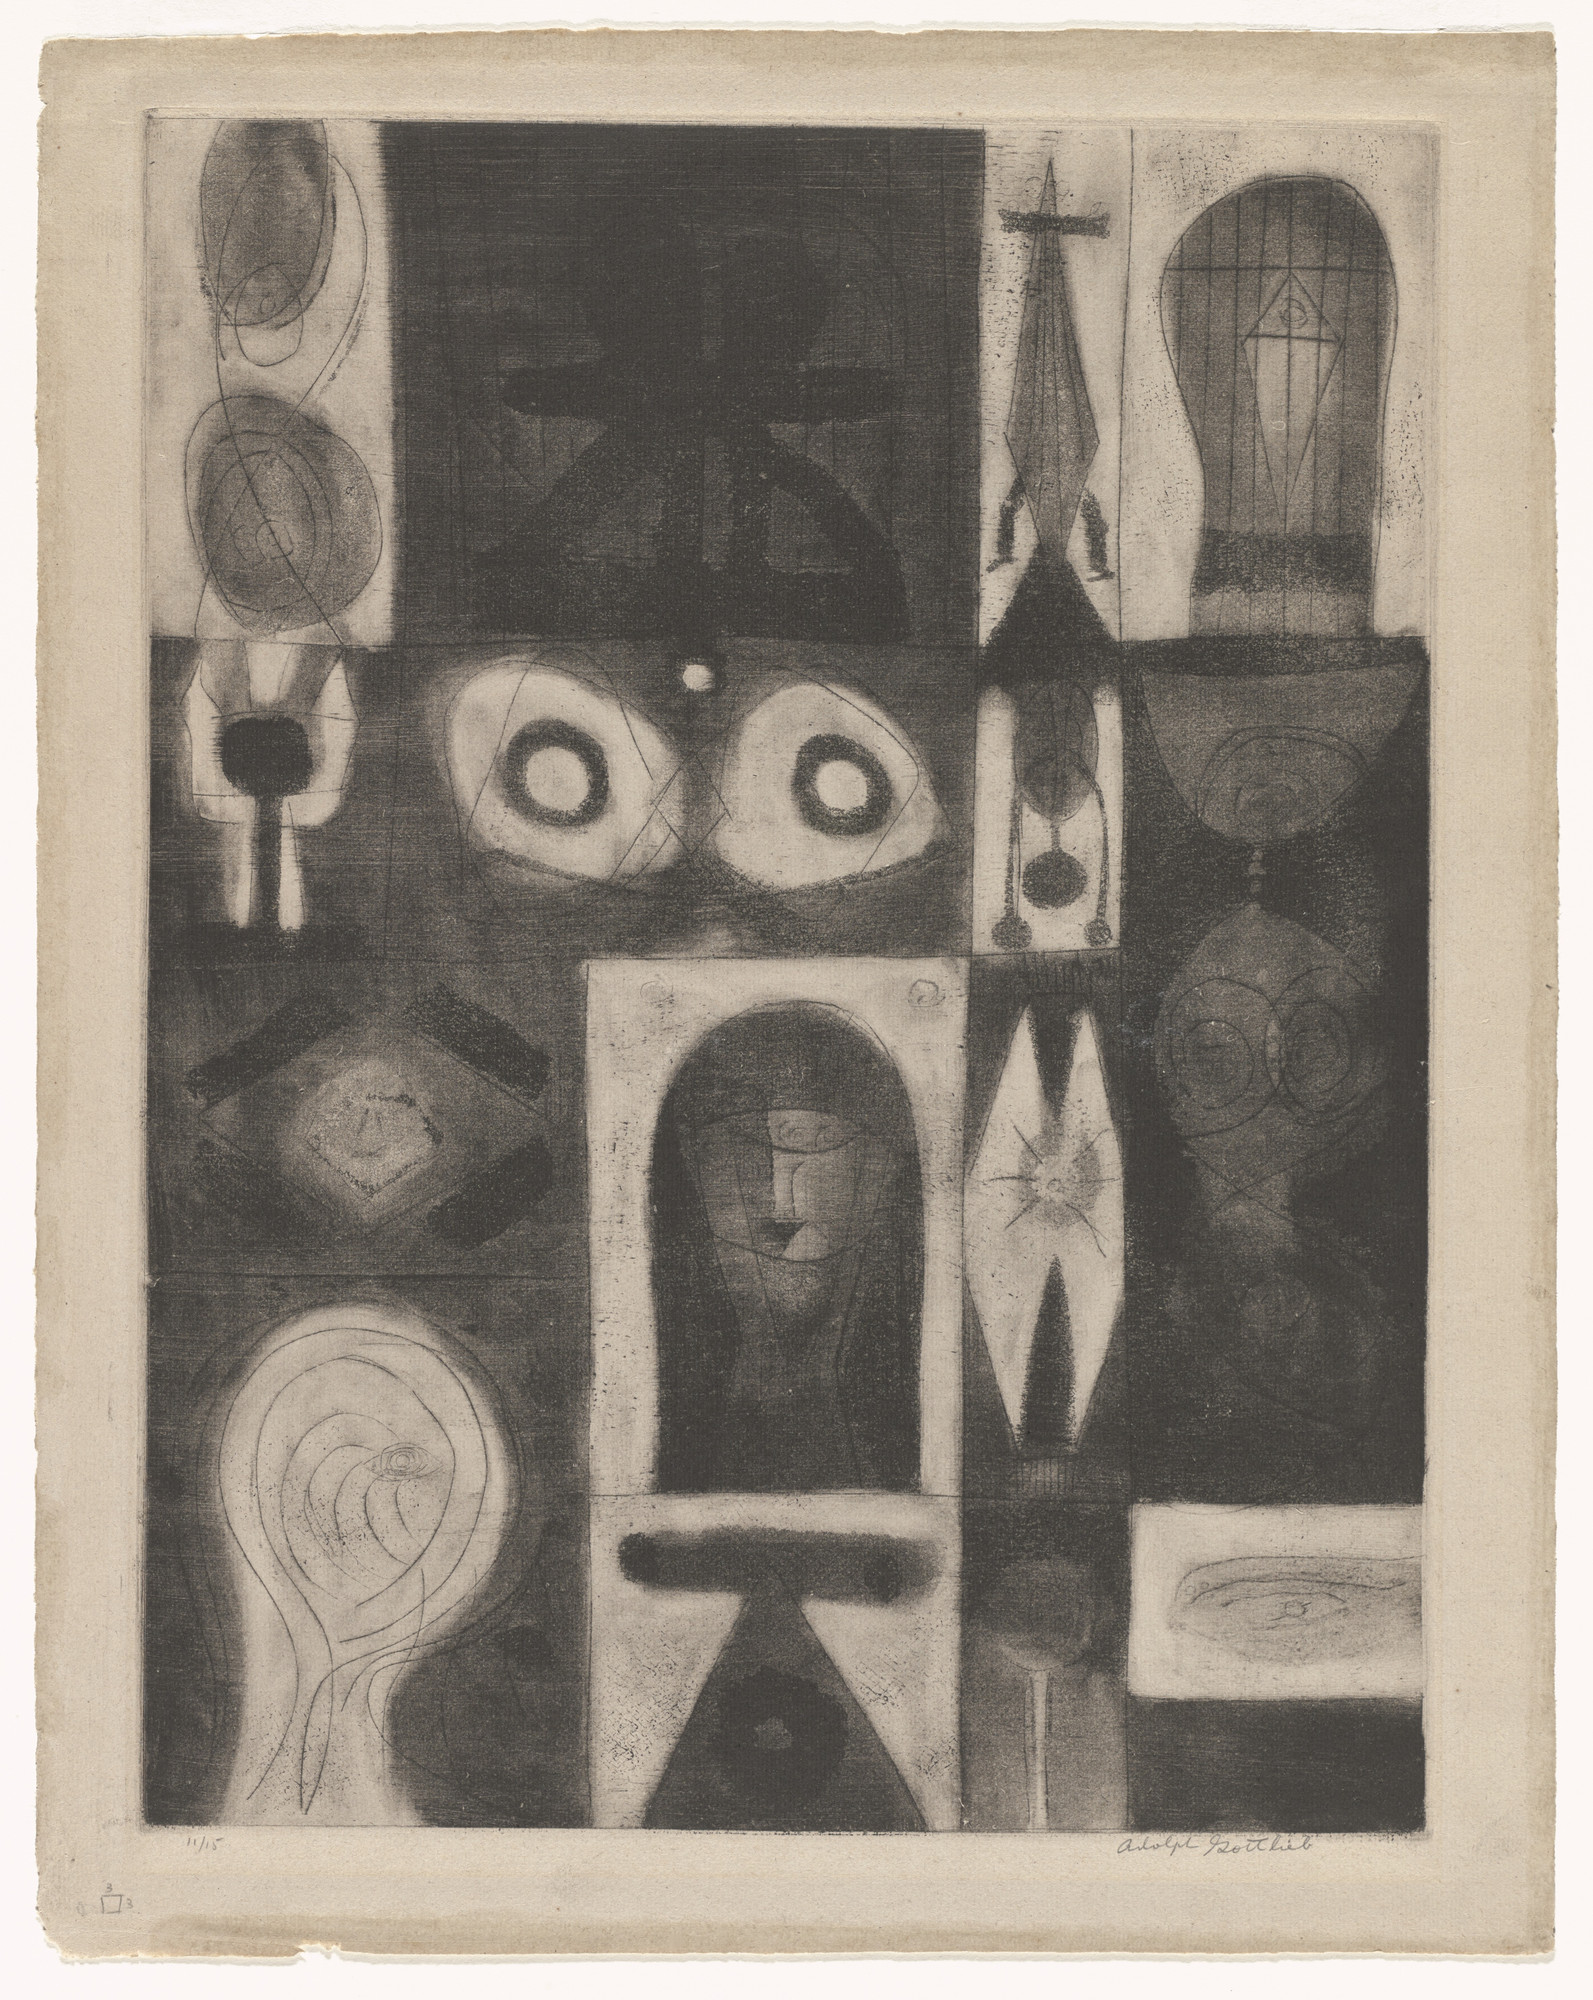 Adolph Gottlieb. Apparition. 1945